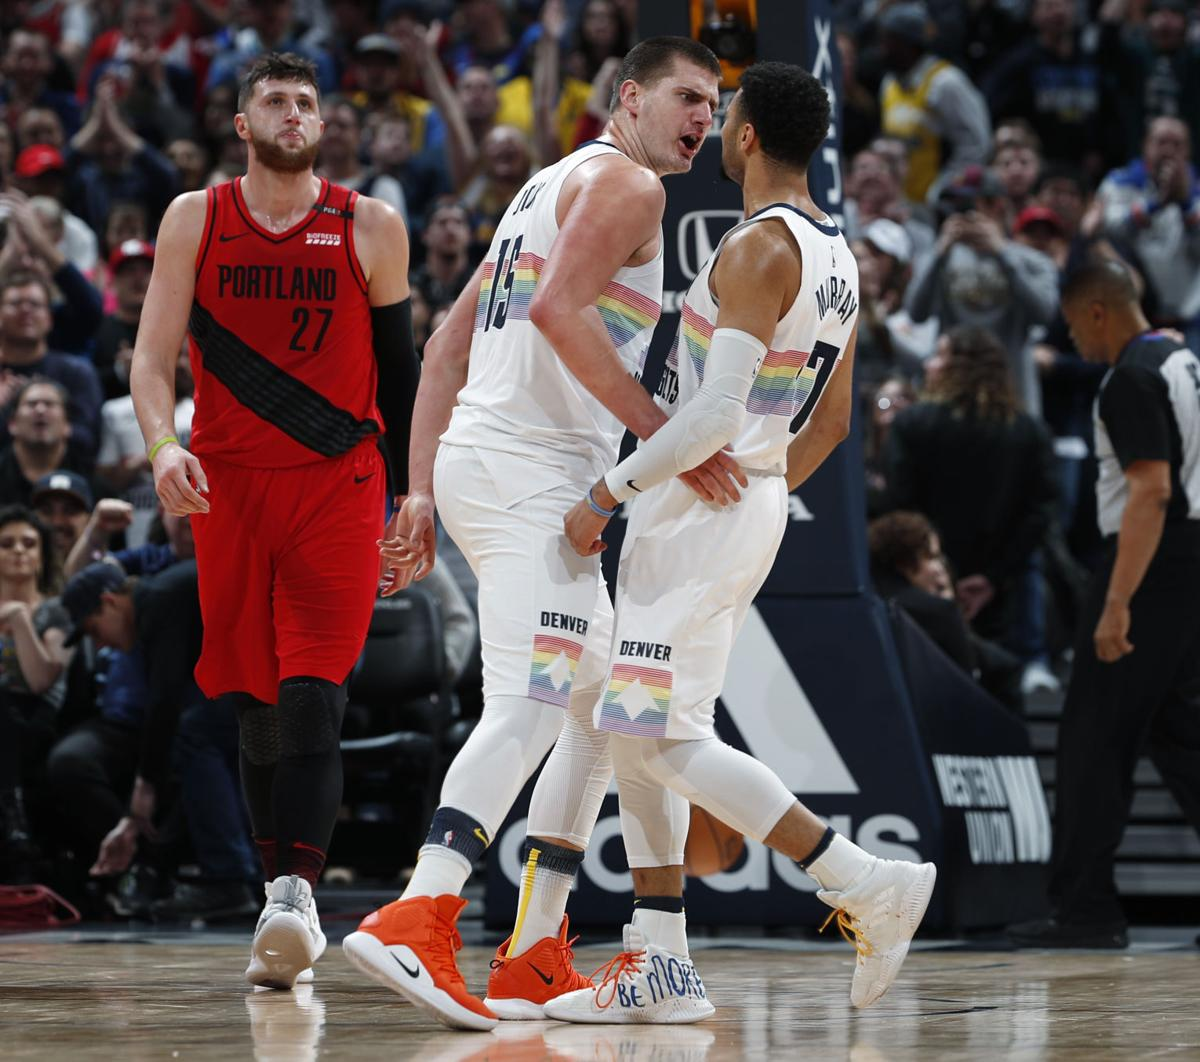 Denver Nuggets Vs Golden State Warriors Game 6 Score: Paul Klee: Nuggets Earn A Lofty Prediction From Franchise